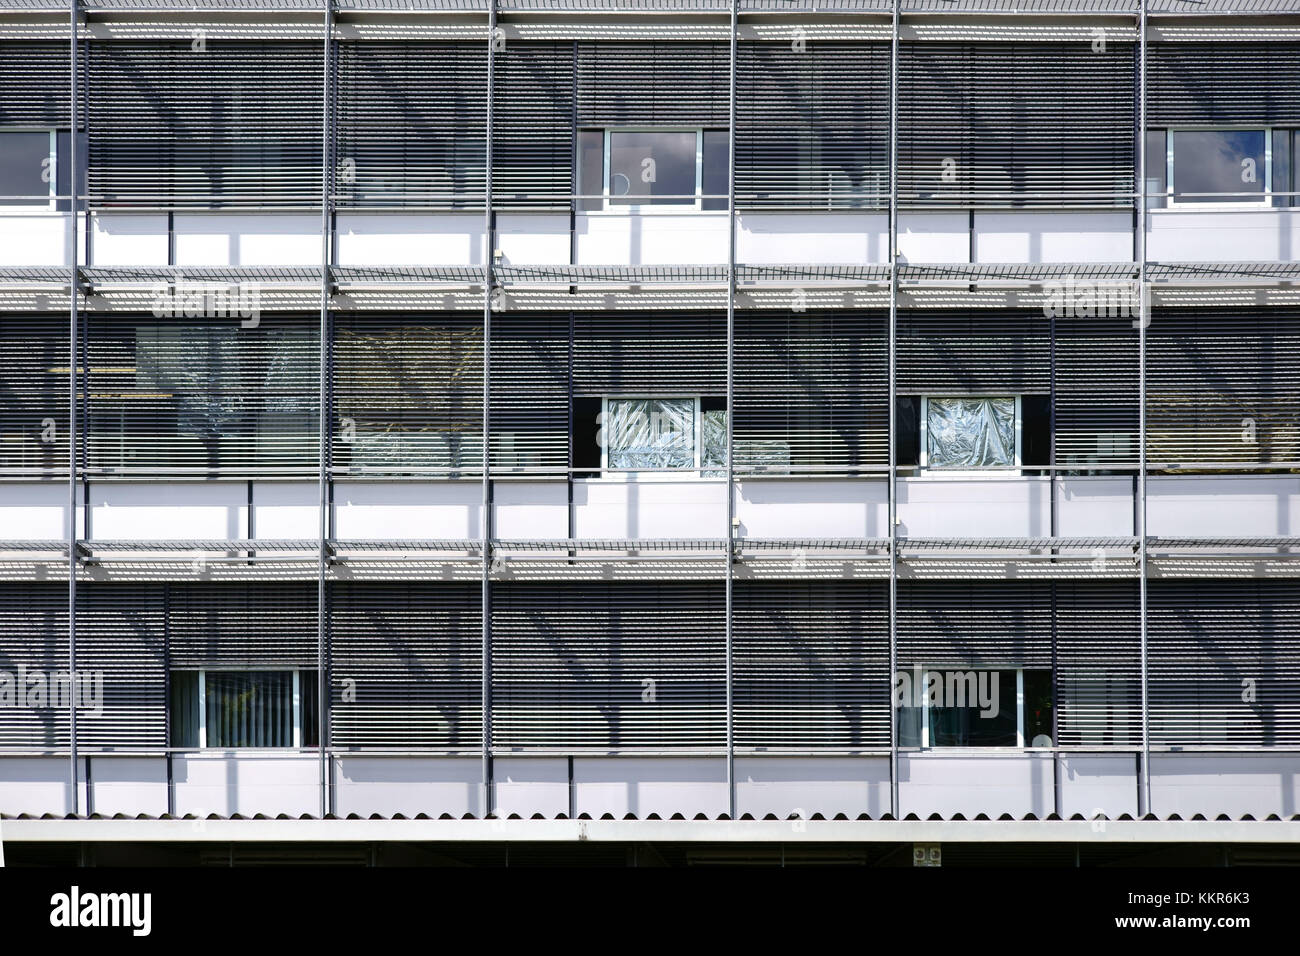 The modern facade of a public building with steel design works the shades throw. - Stock Image